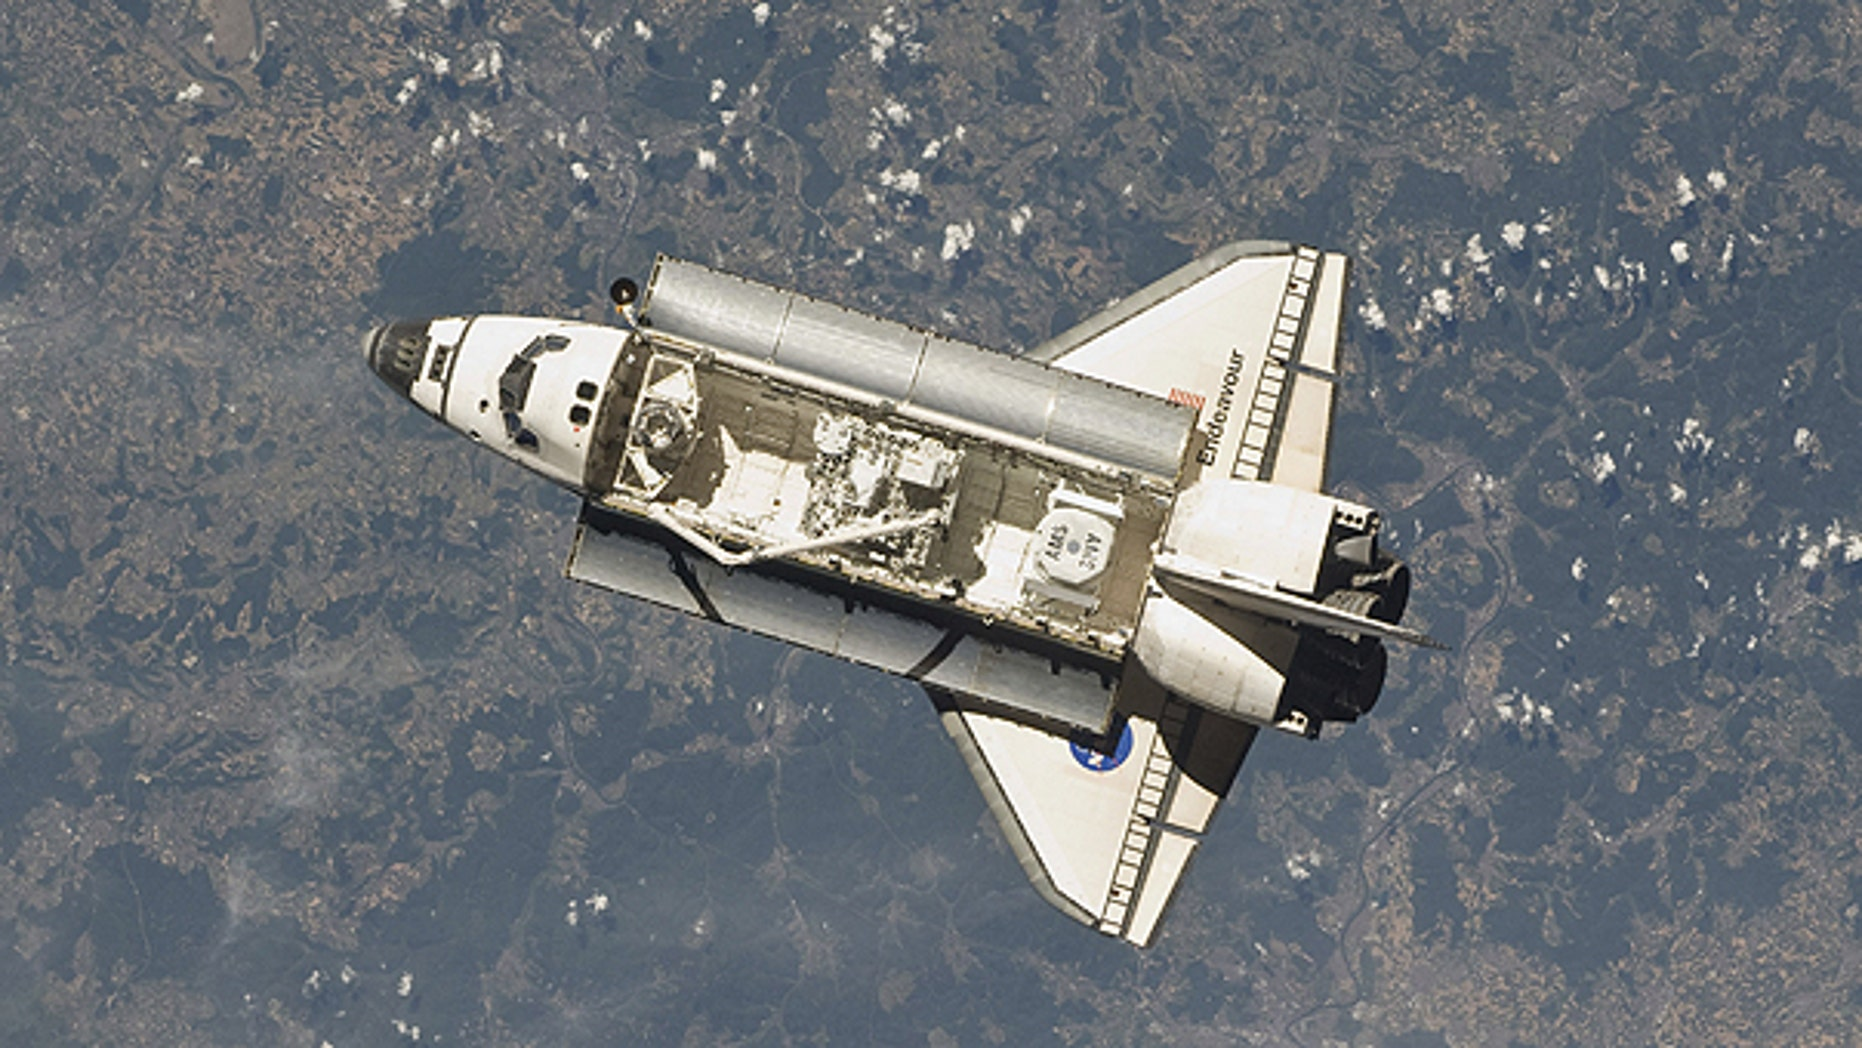 May 18: This image provided by NASA taken by one of the Expedition 27 crew members aboard the International Space Station shows the space shuttle Endeavour as the two spacecraft made their relative approach.